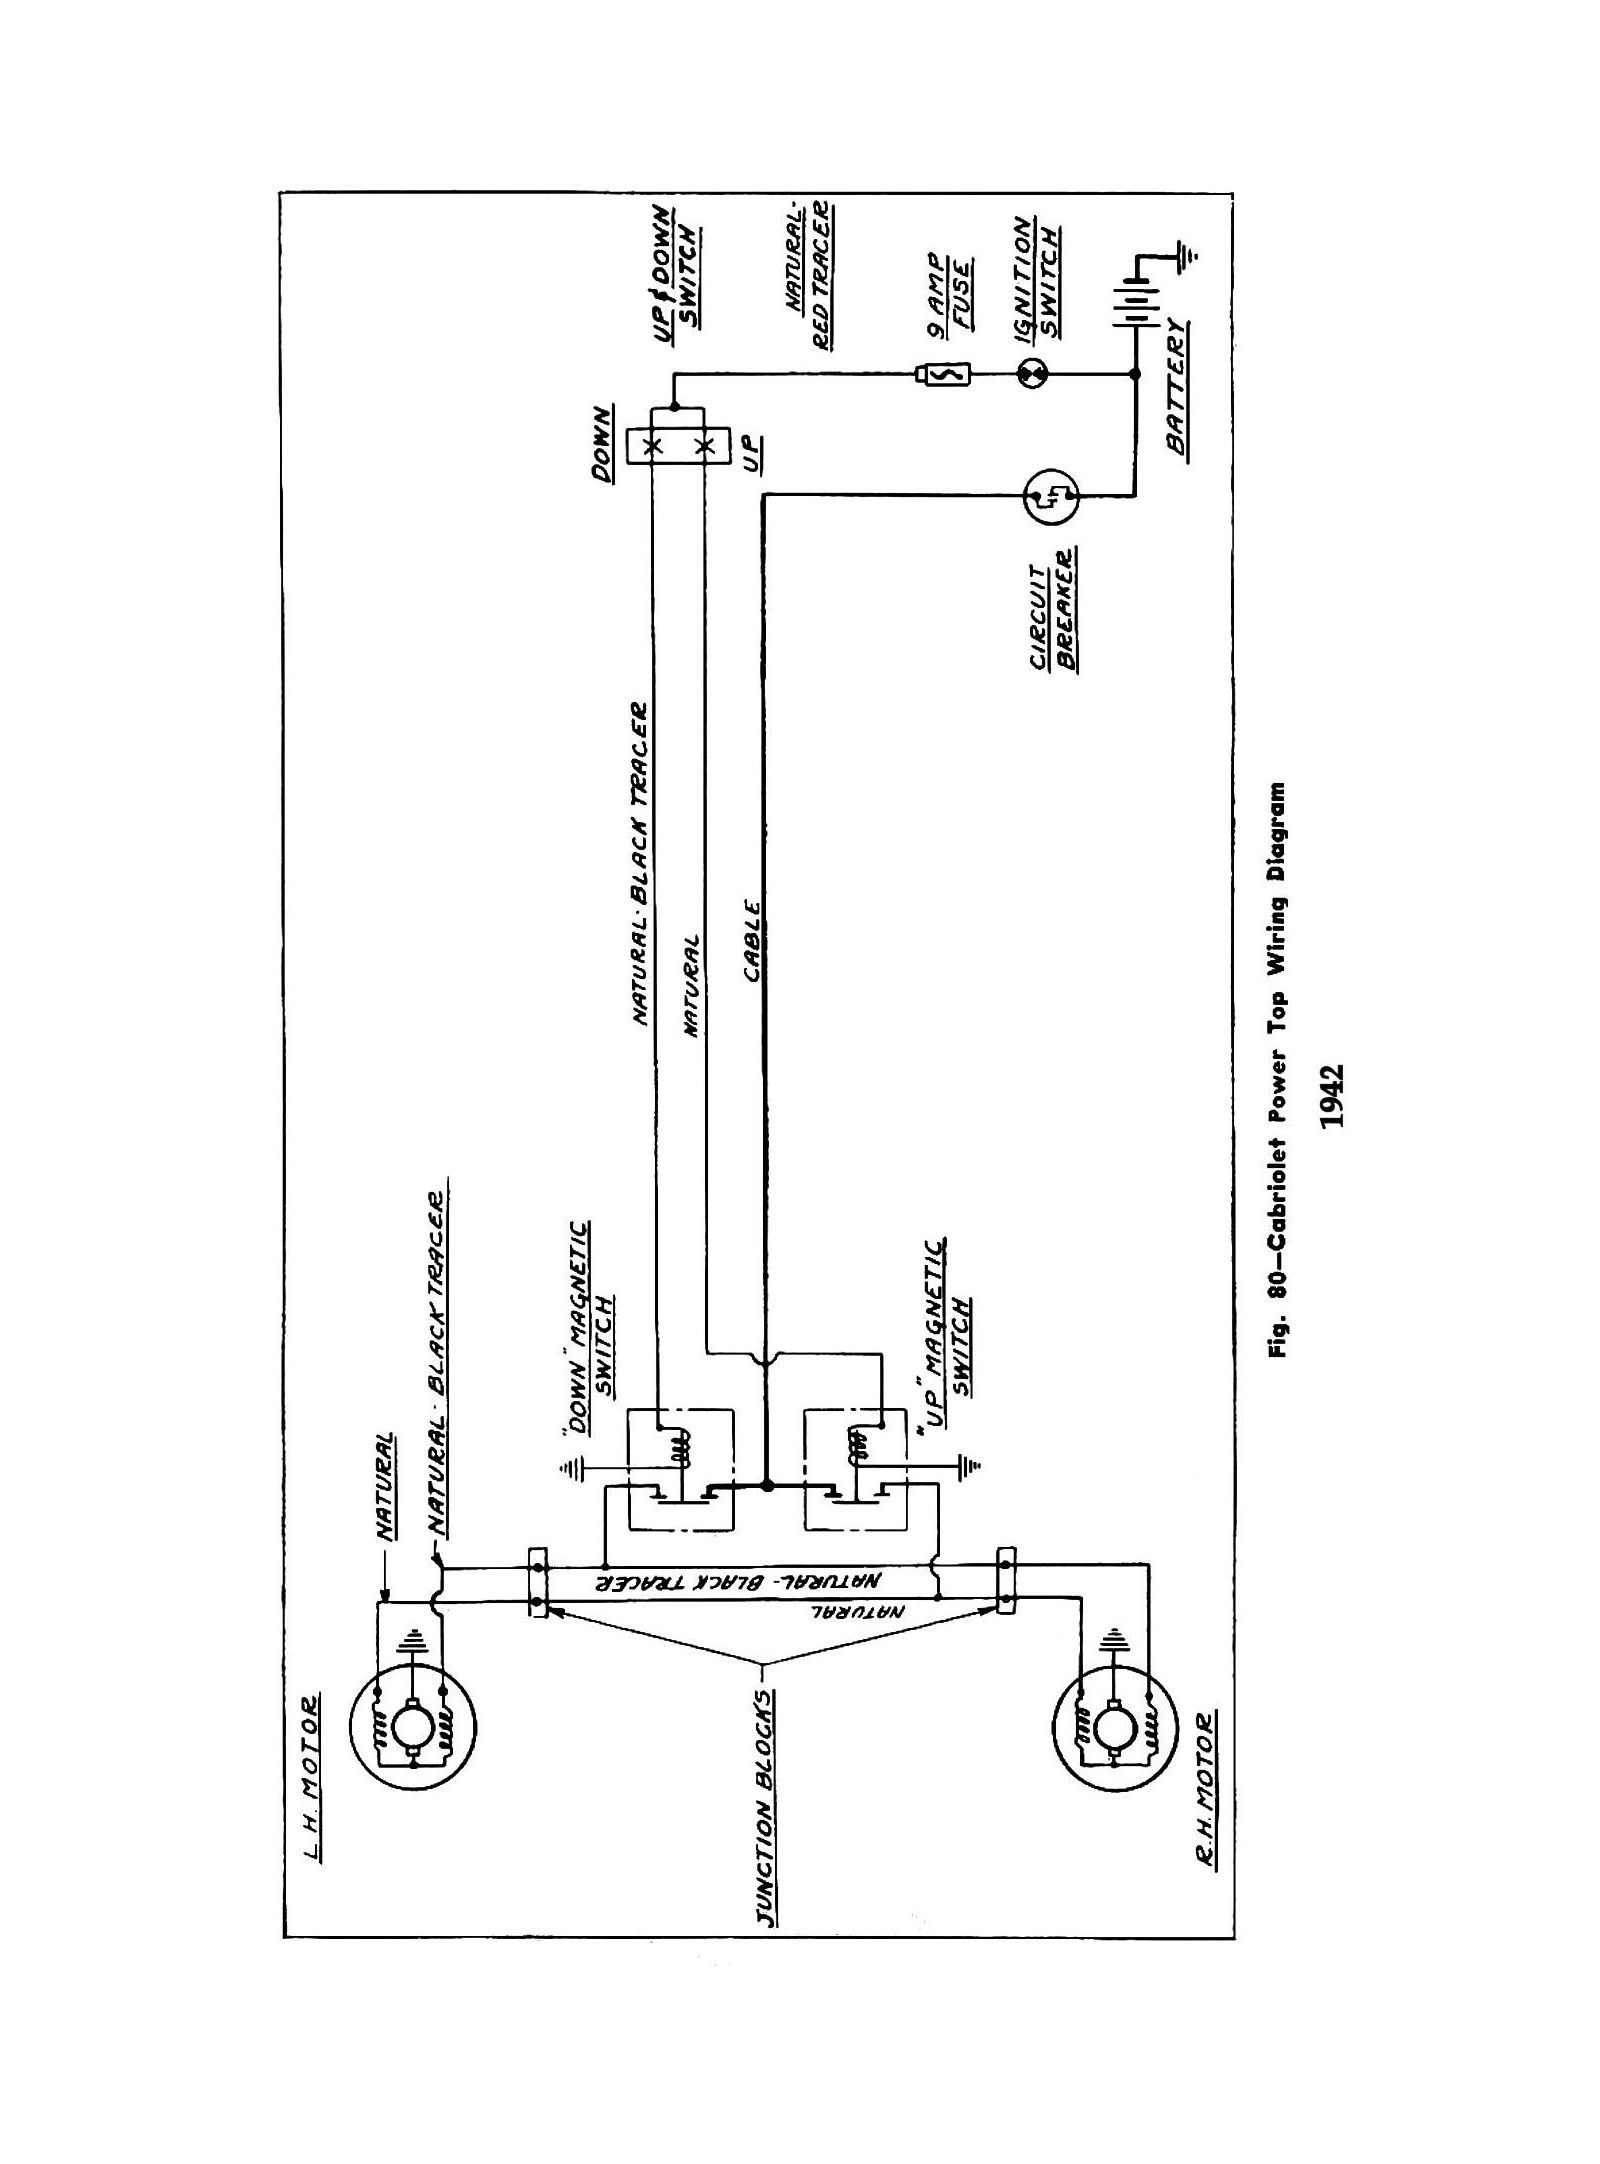 12 Volt Conversion Wiring Diagram 1939 Chevy Libraries Harness